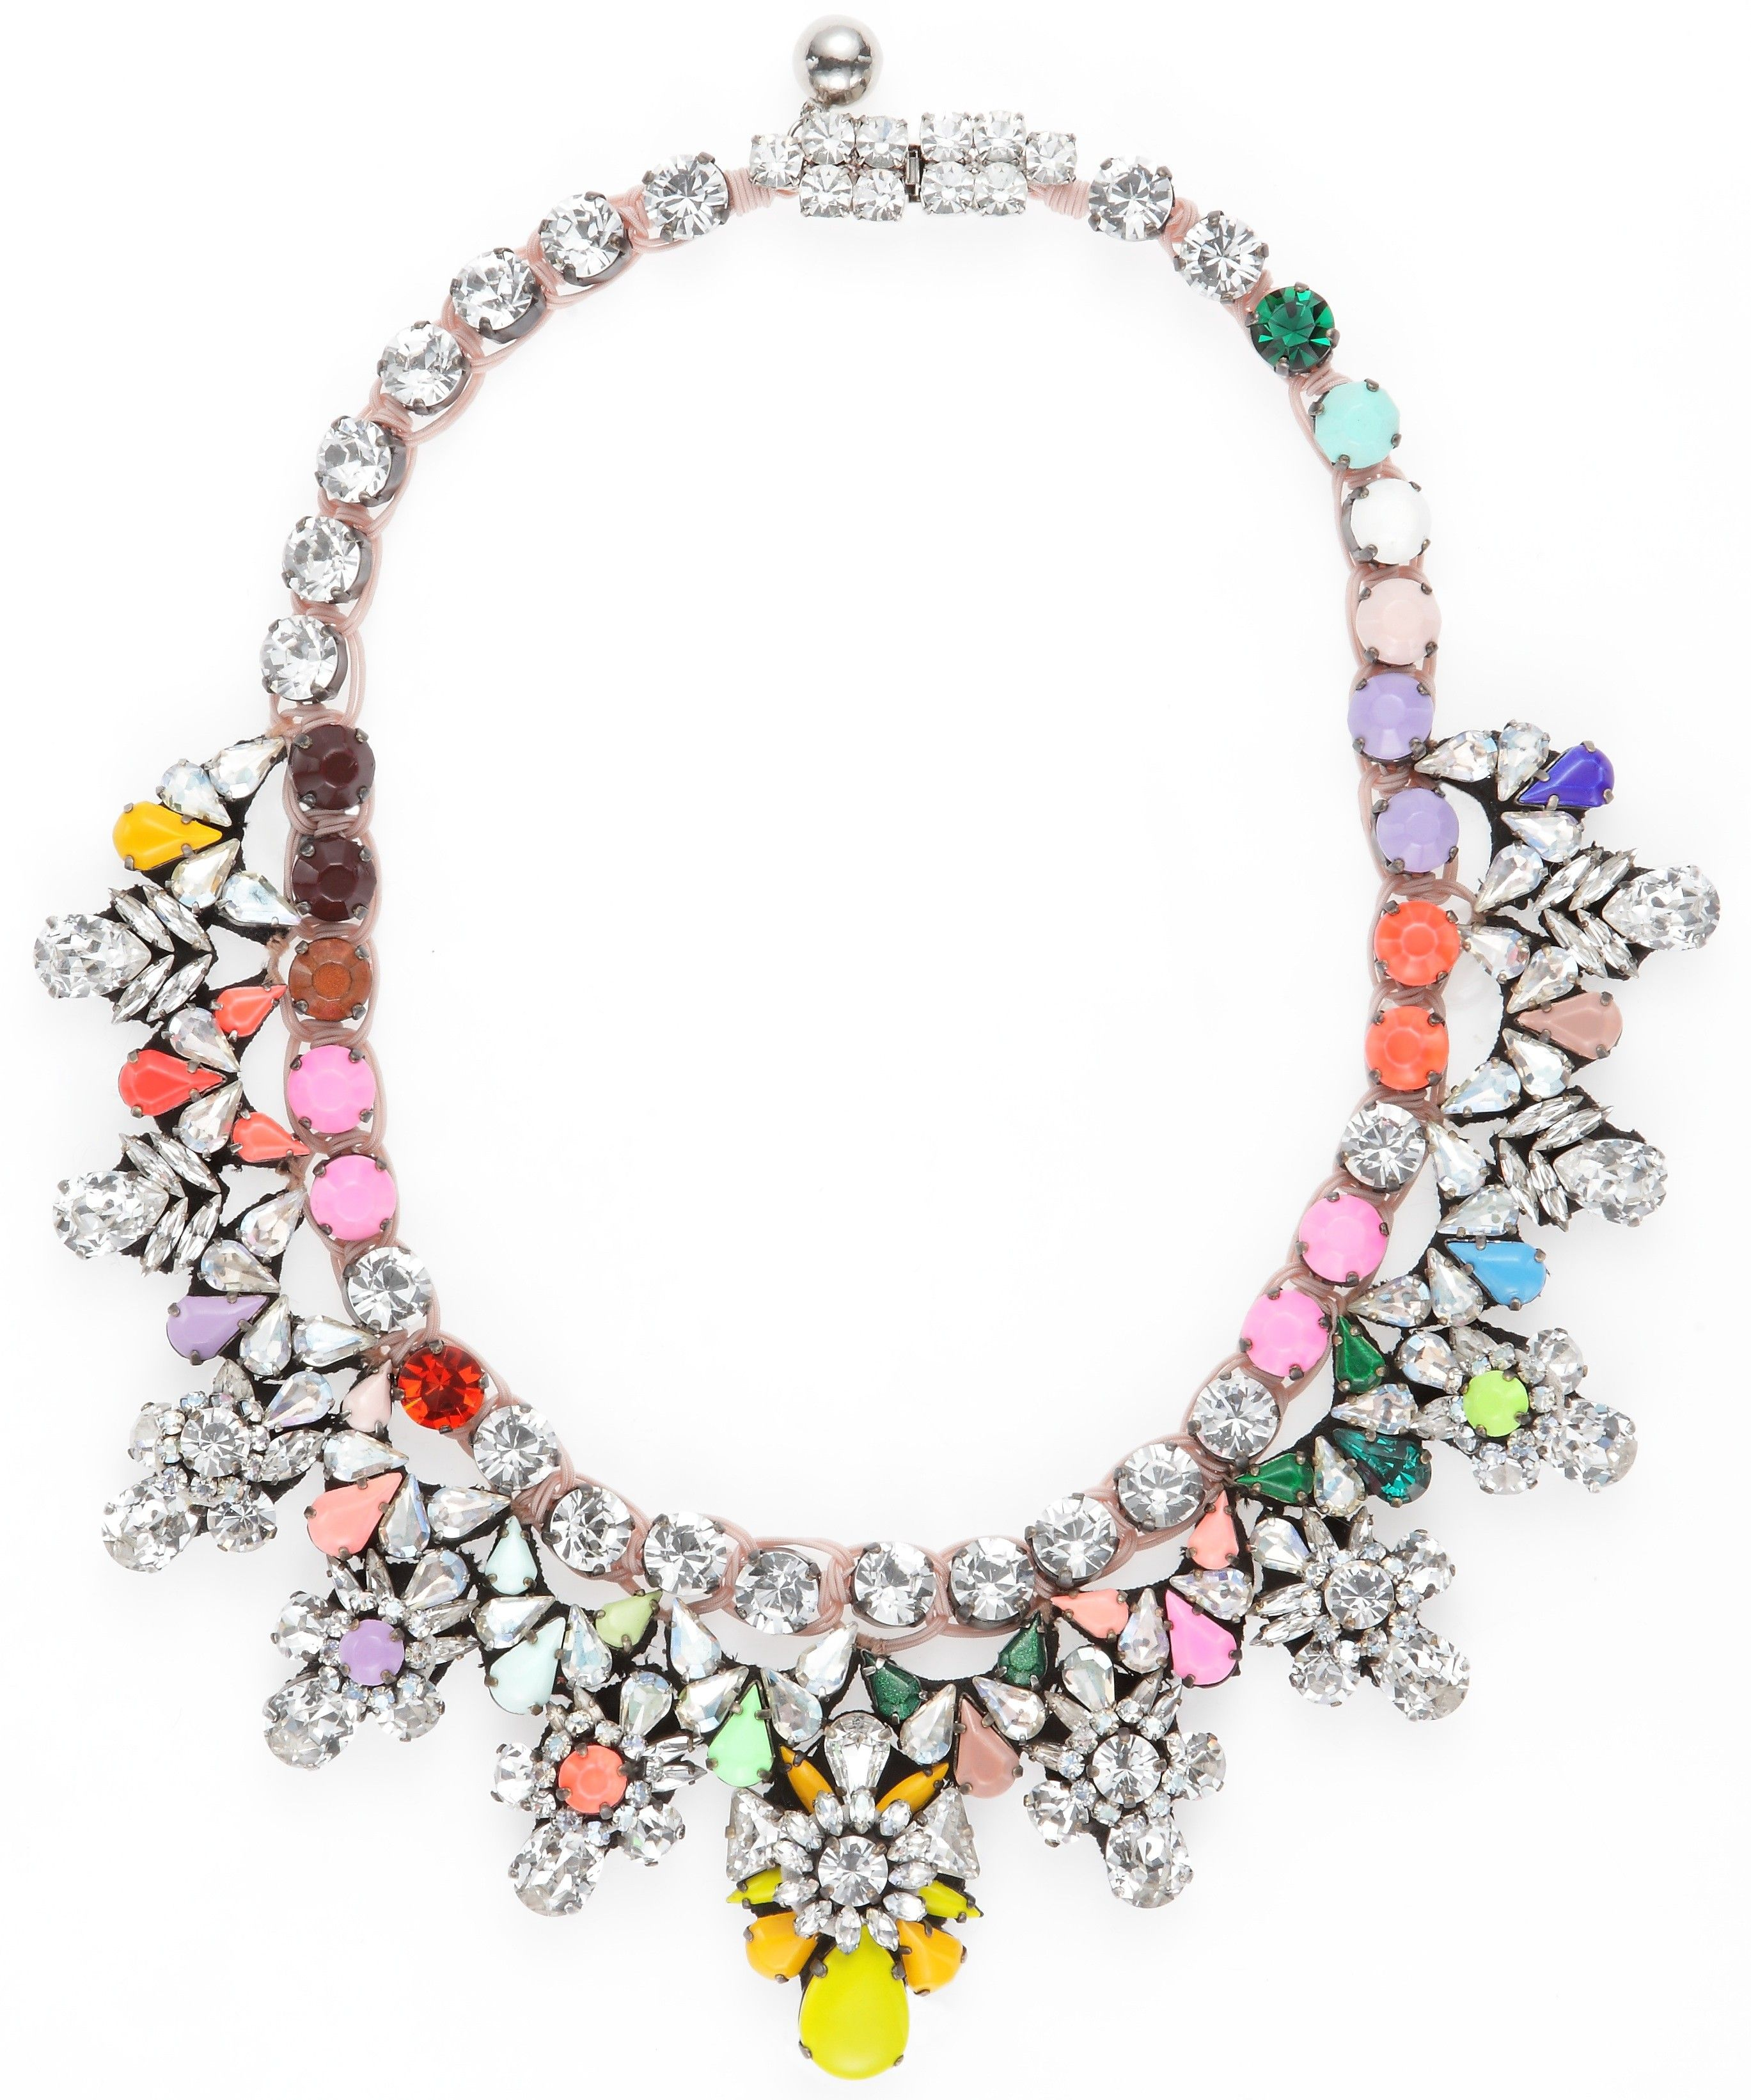 To acquire Jewelery trendy and accessories in shourouk collection pictures trends